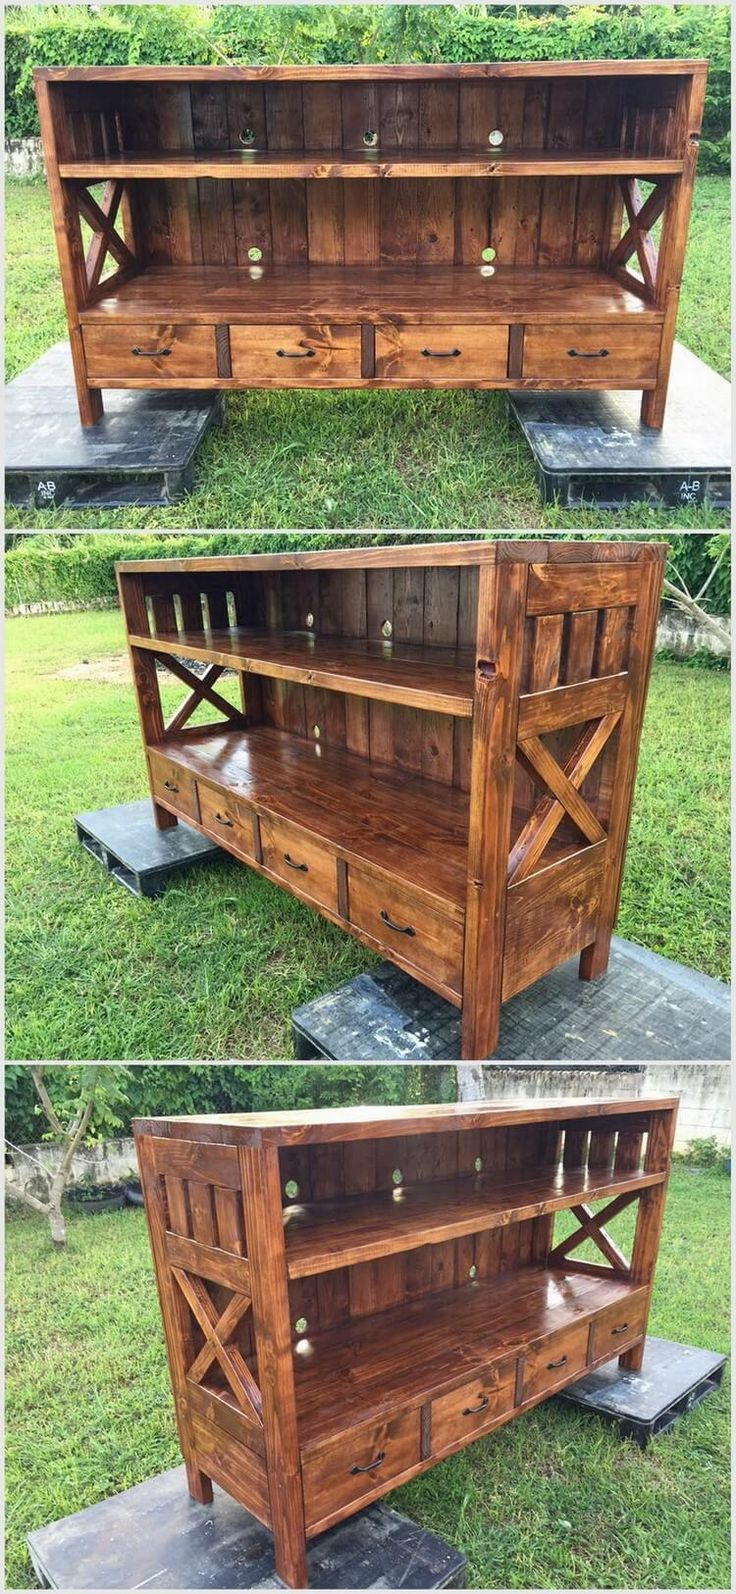 It is a very beautiful approach to use wooden pallets. You can make this furniture but before using wooden pallets, do not use polish. Once you have finished this project then you have to use paint and polish to beautify this furniture piece. It contains drawers at its lower section.